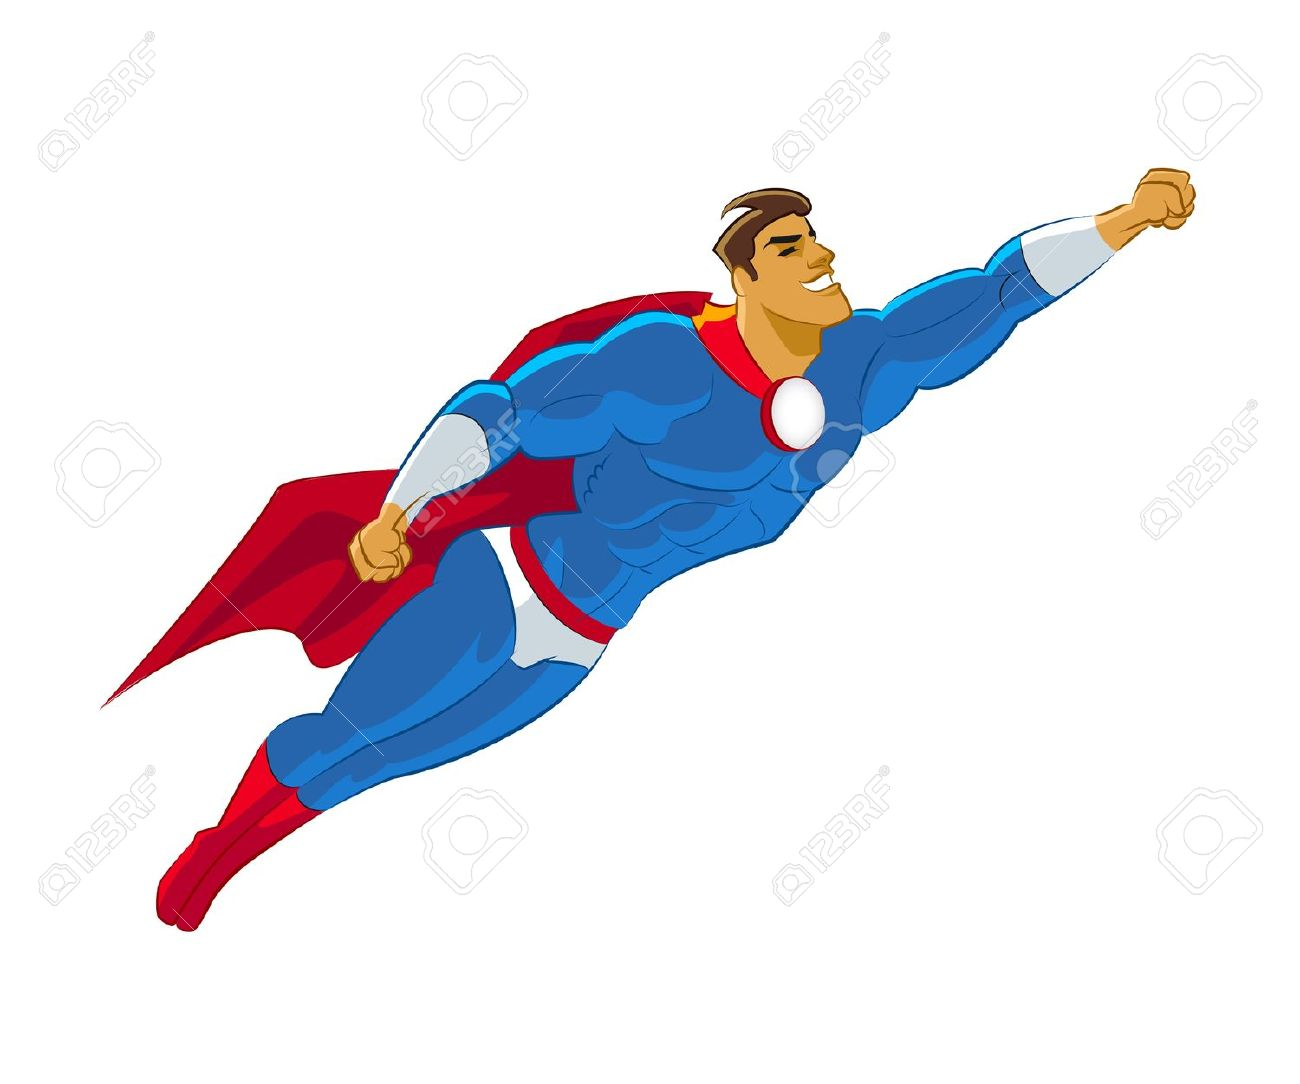 Superman body clipart png royalty free stock Superhero Flying Vector Illustration Royalty Free Cliparts ... png royalty free stock